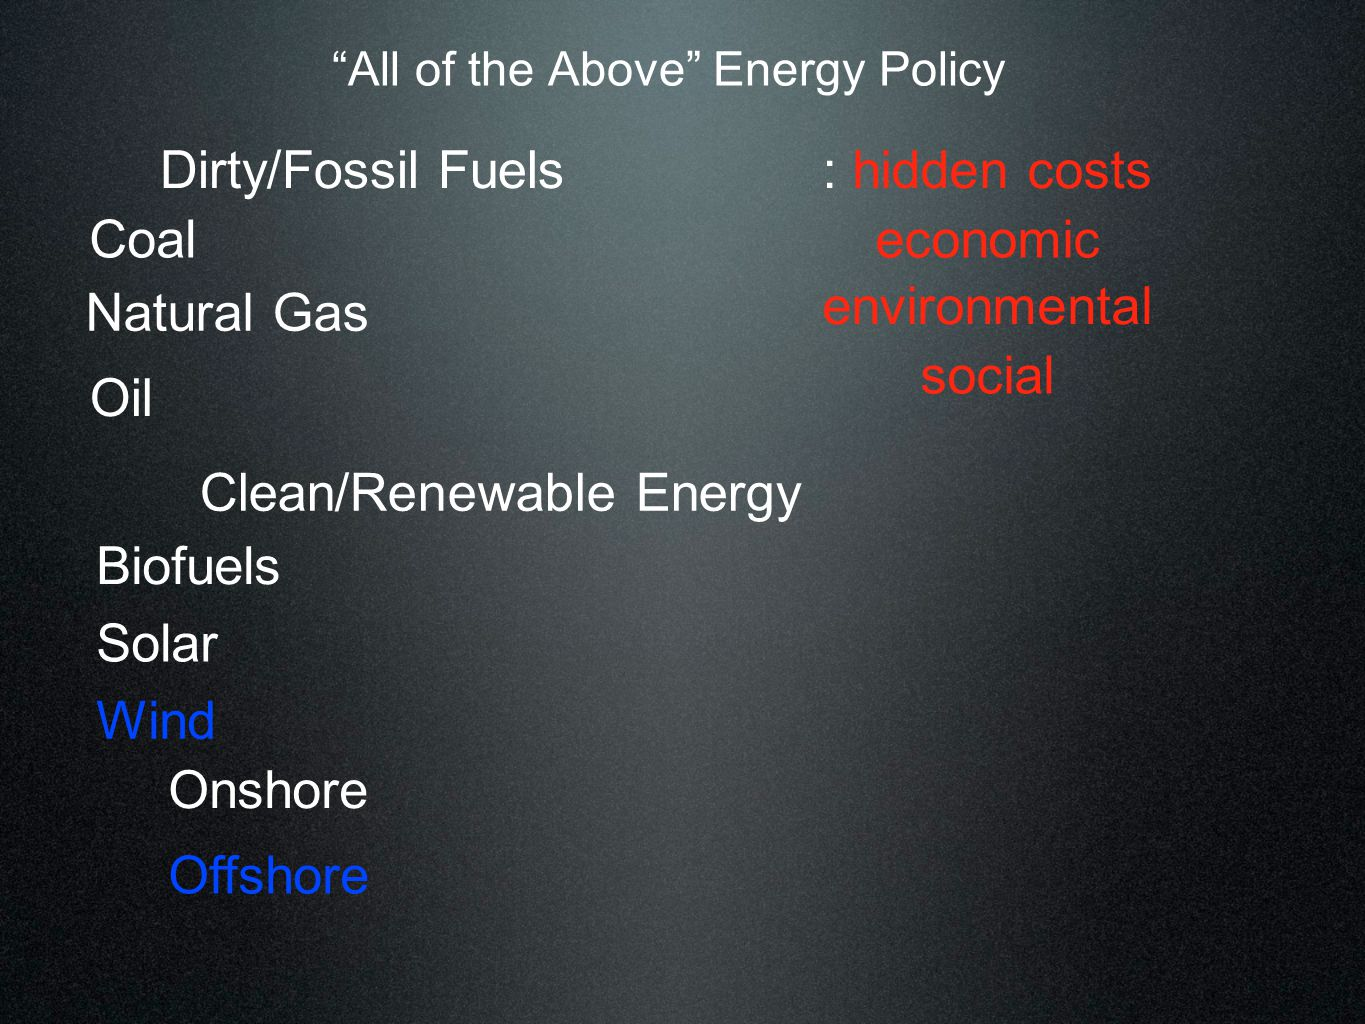 Hidden Costs of Dirty/Fossil Fuels National/Energy Security: $1B/Day to Import Crude Oil $67-83B/yr on Overseas Oil Security Missions X X The Pew Project on National Security, Energy and climate VA: $44.5MM/yr Coalfield Employment Enhancement Tax Credit* * Commonwealth Institute economic Federal Coal Subsidies & Benefit Payments Estimated at $3.2-$5.4B/YR + + Mining Coal, Mounting Costs: The Life Cycle Consequences of Coal KY: $115MM/yr Coal Subsidies +